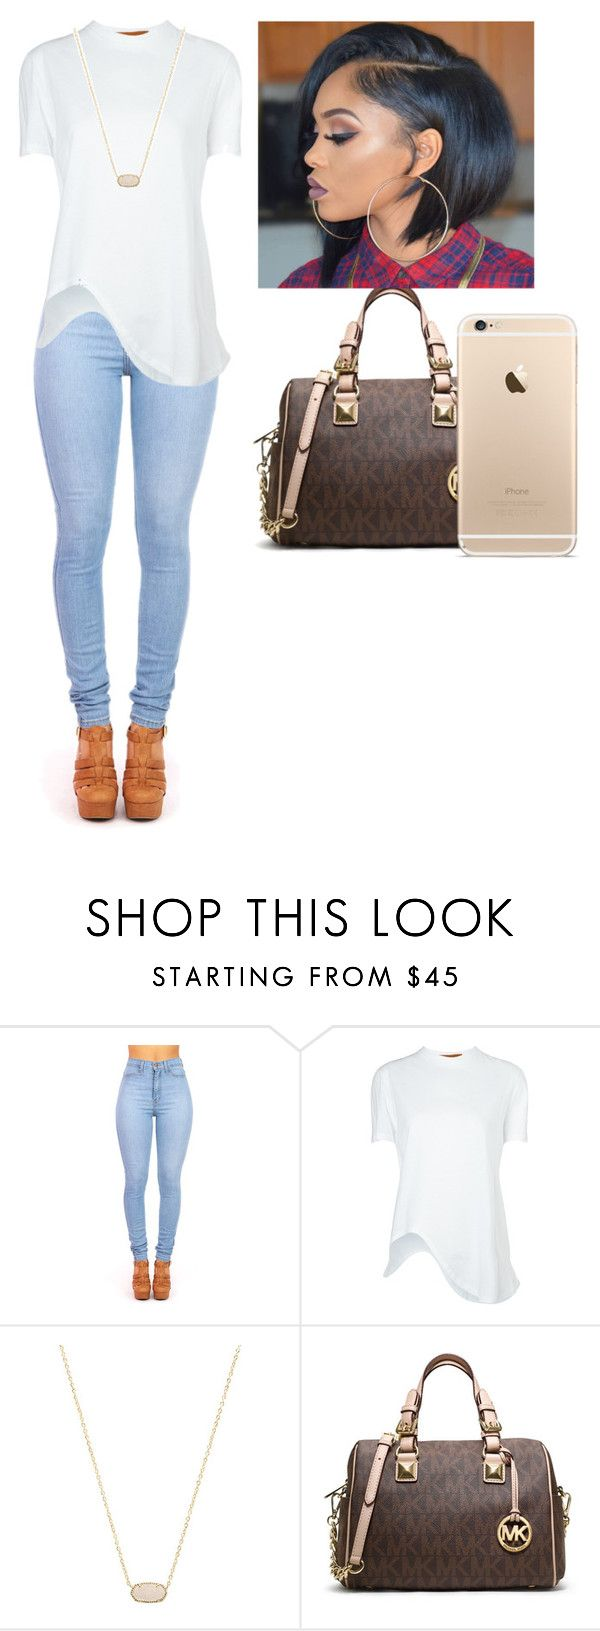 """Untitled #62"" by raven-domination ❤ liked on Polyvore featuring Coperni Femme, Kendra Scott, MICHAEL Michael Kors, men's fashion and menswear"